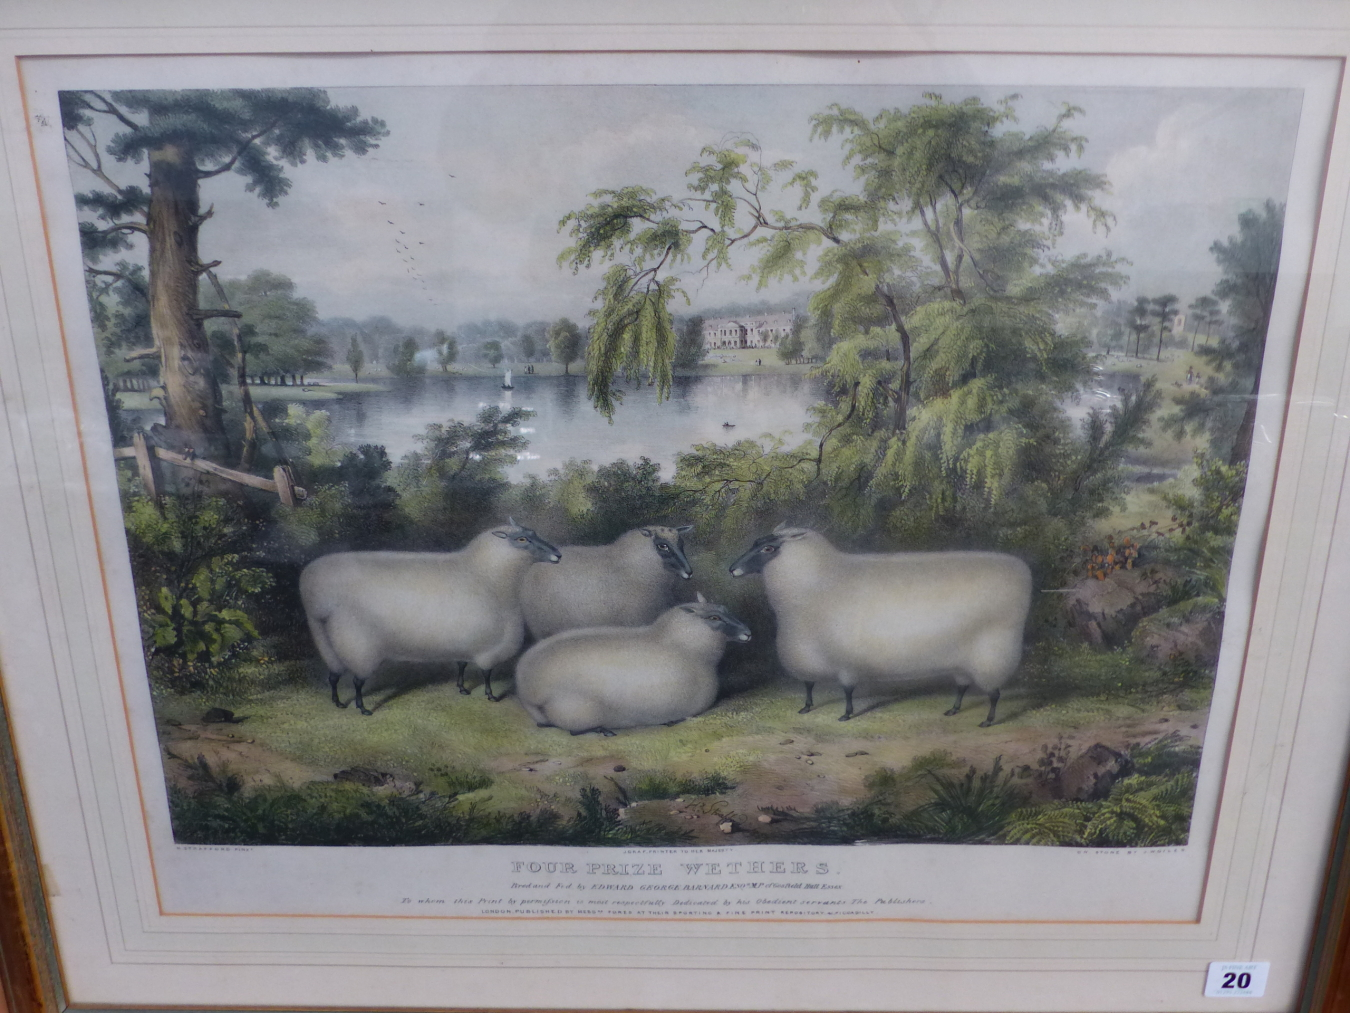 AFTER H. STAFFORD. A HAND COLOURED PRINT OF FOUR SHEEP. 41 x 52cms